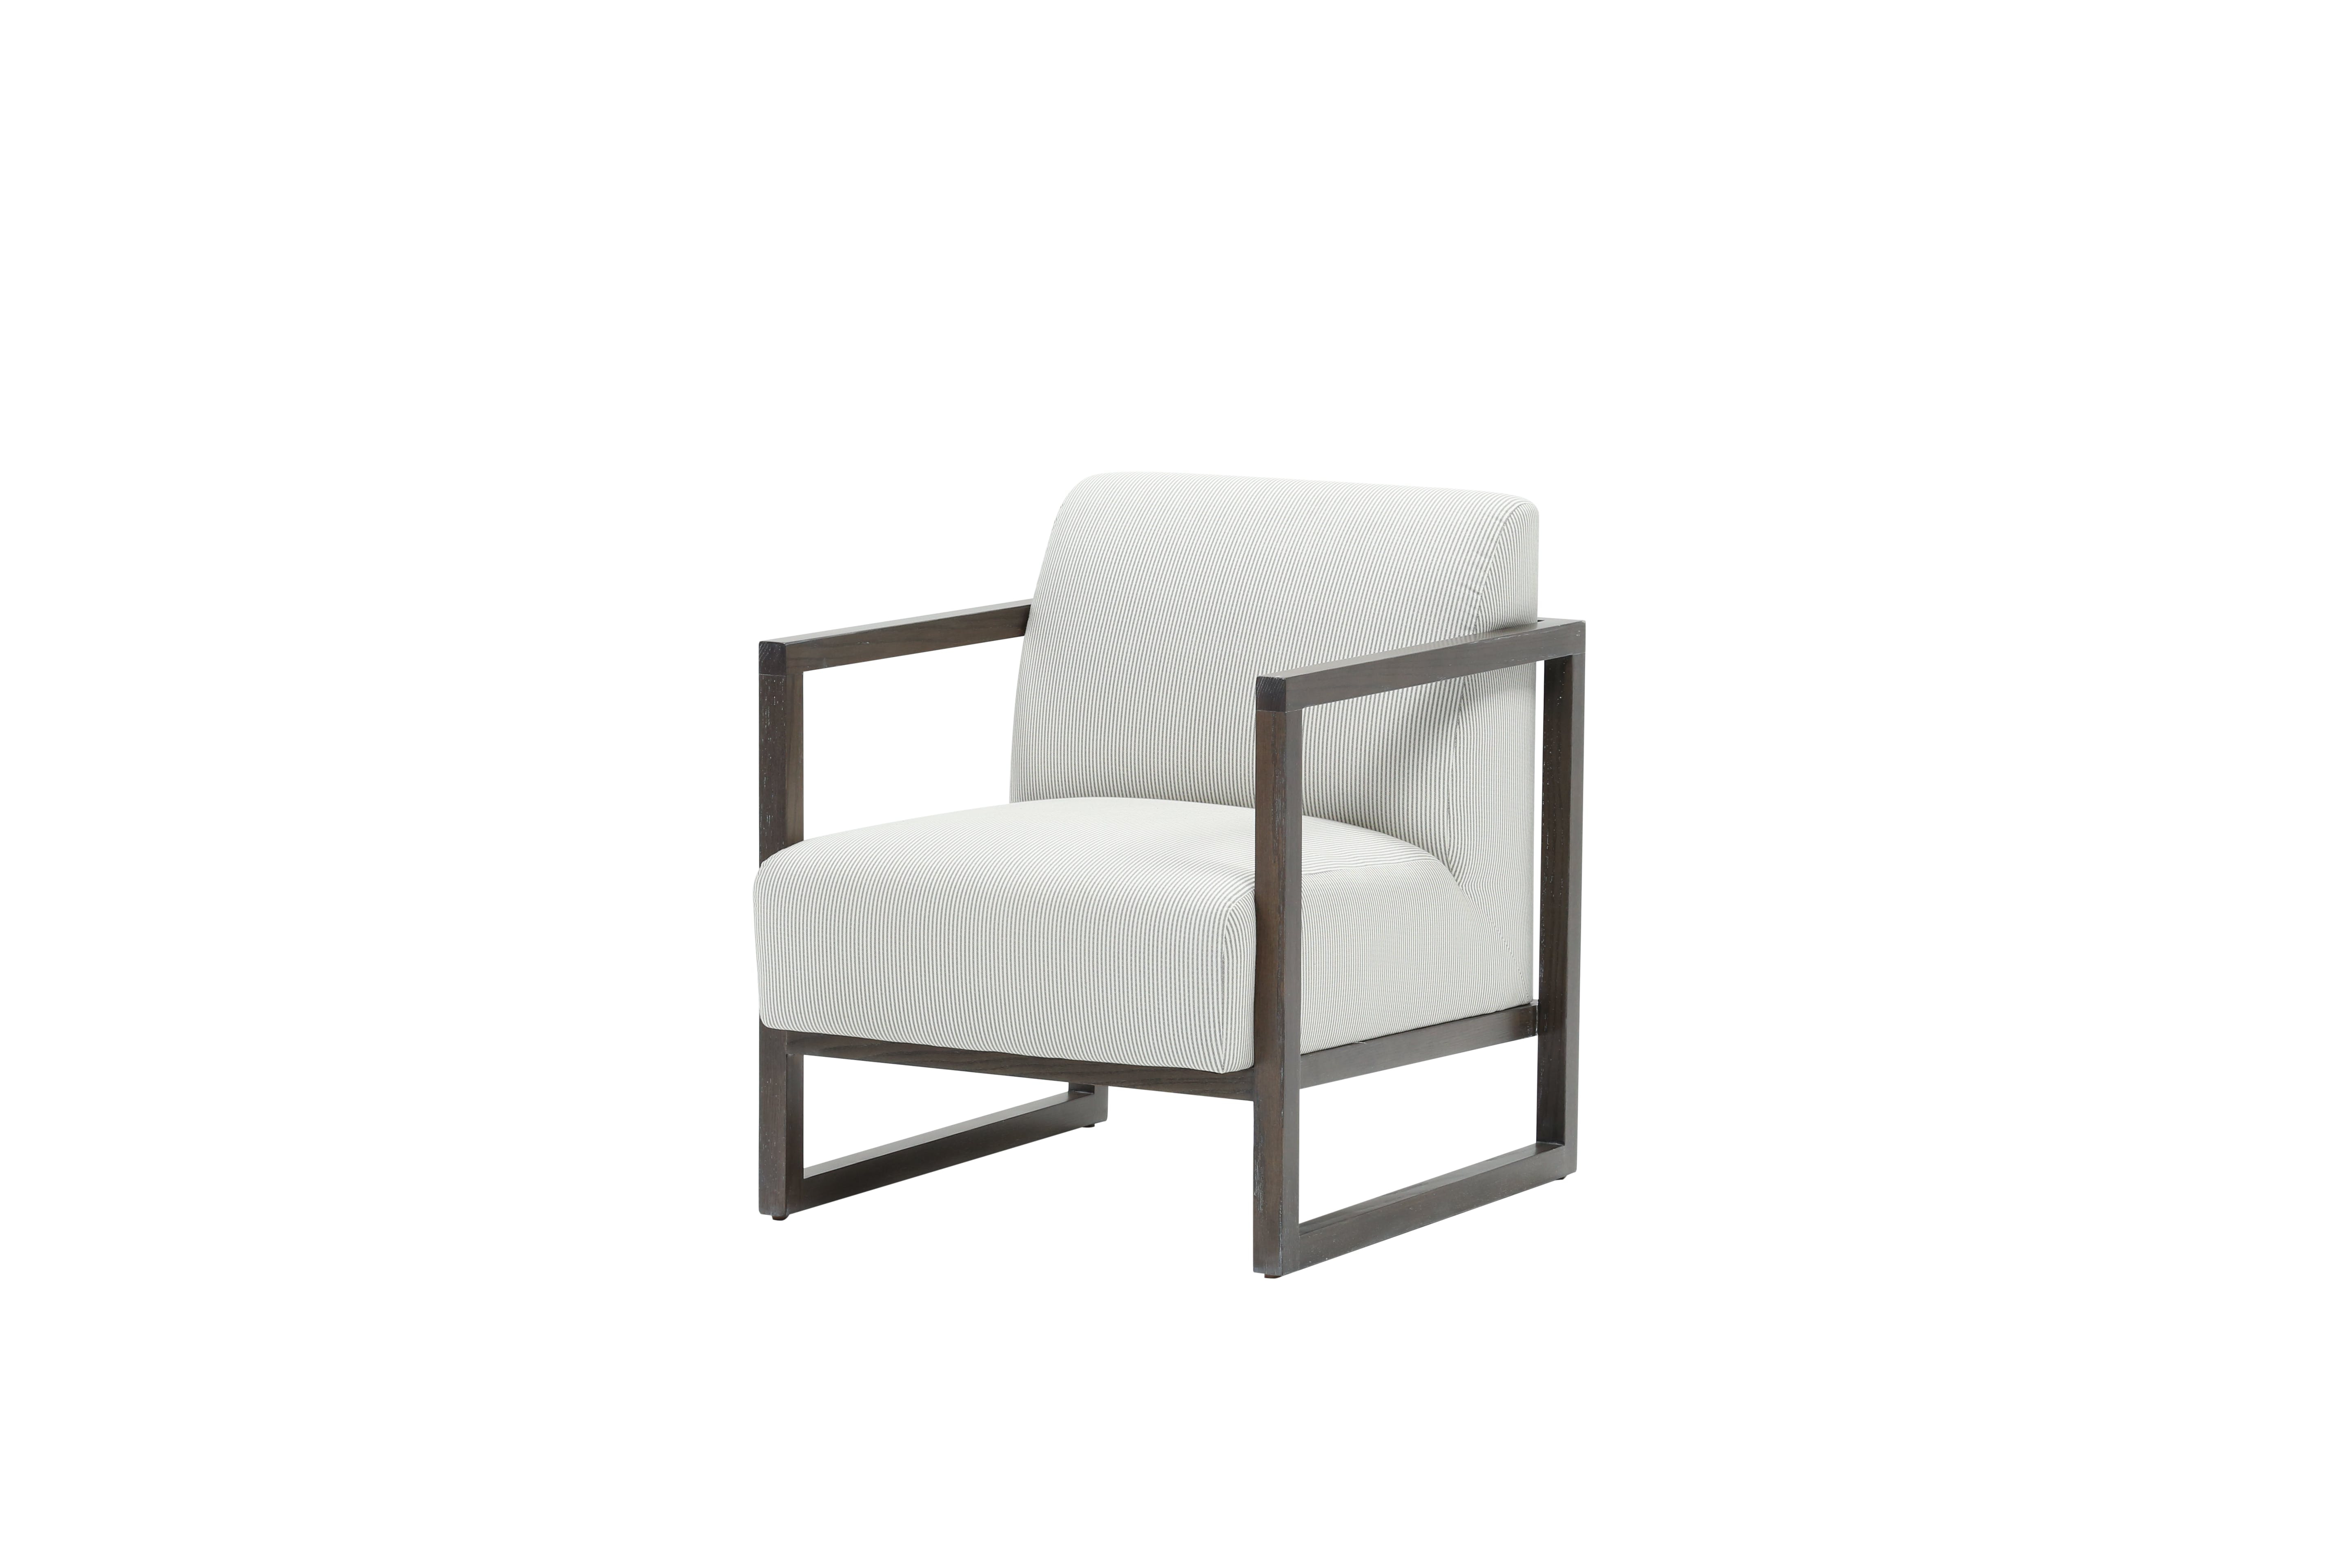 Newest Nate Berkus Just Launched A Home Collection With Hubby Jeremiah Inside Liv Arm Sofa Chairs By Nate Berkus And Jeremiah Brent (View 17 of 20)